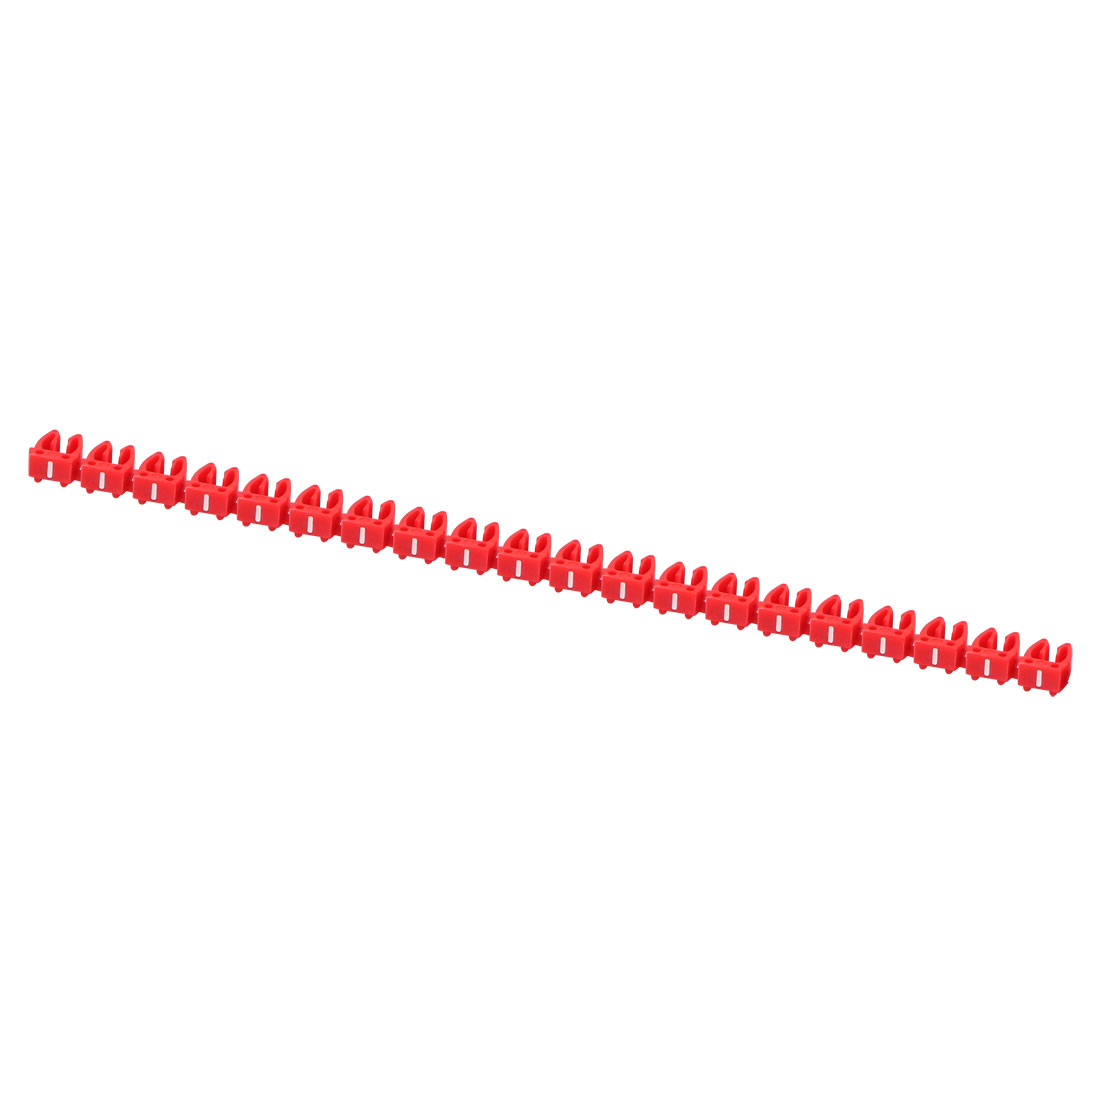 20 Pcs Letters - Network Cable Labels Markers Red for 4.0-6.0mm Dia Wire